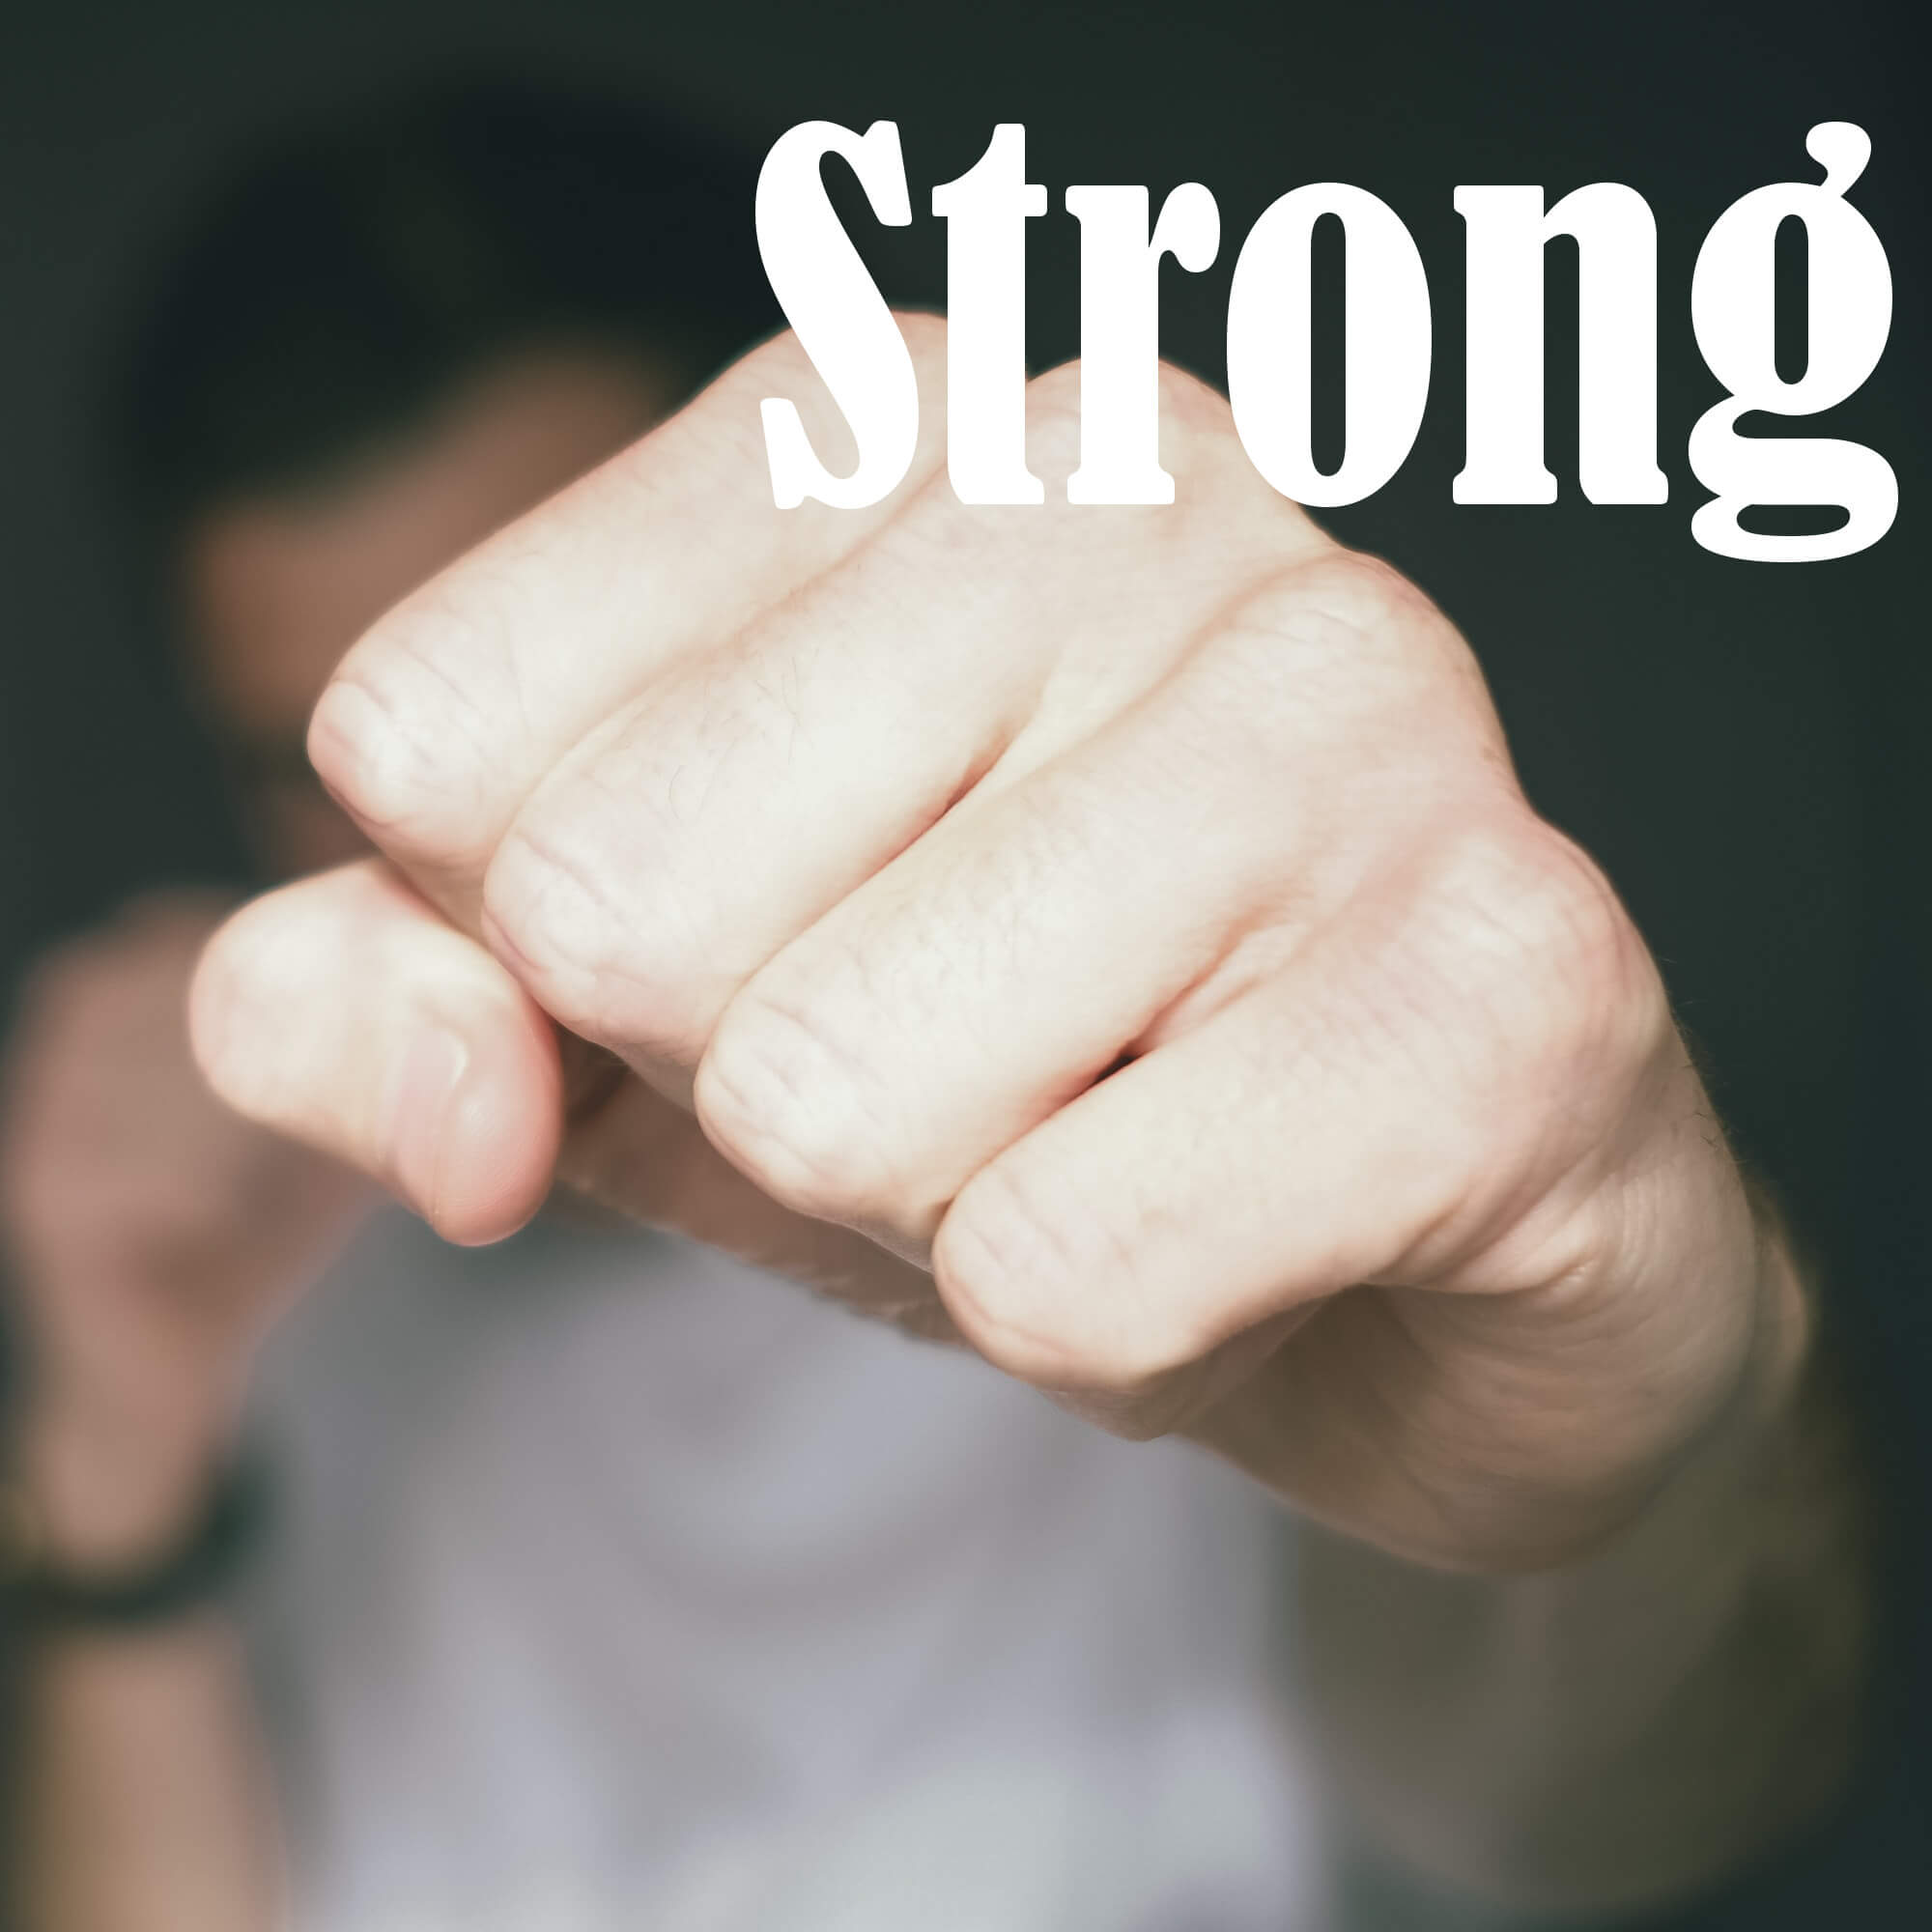 Strong 2